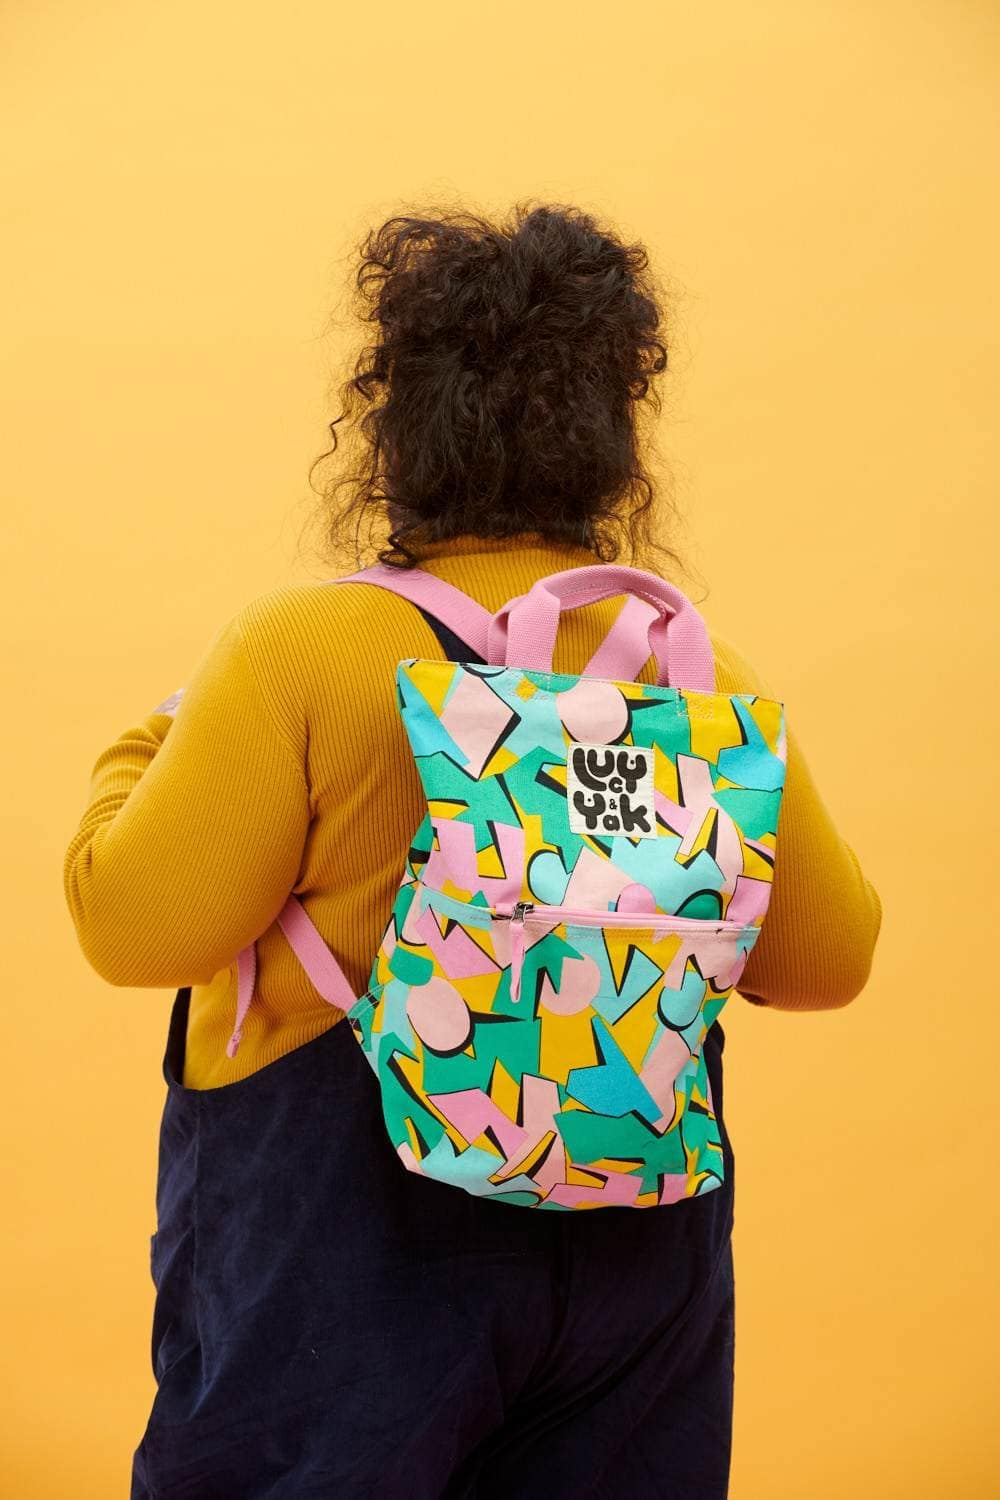 Lucy & Yak Bag Dylan Organic Cotton Canvas Backpack in 'Kit' 80's Abstract Print